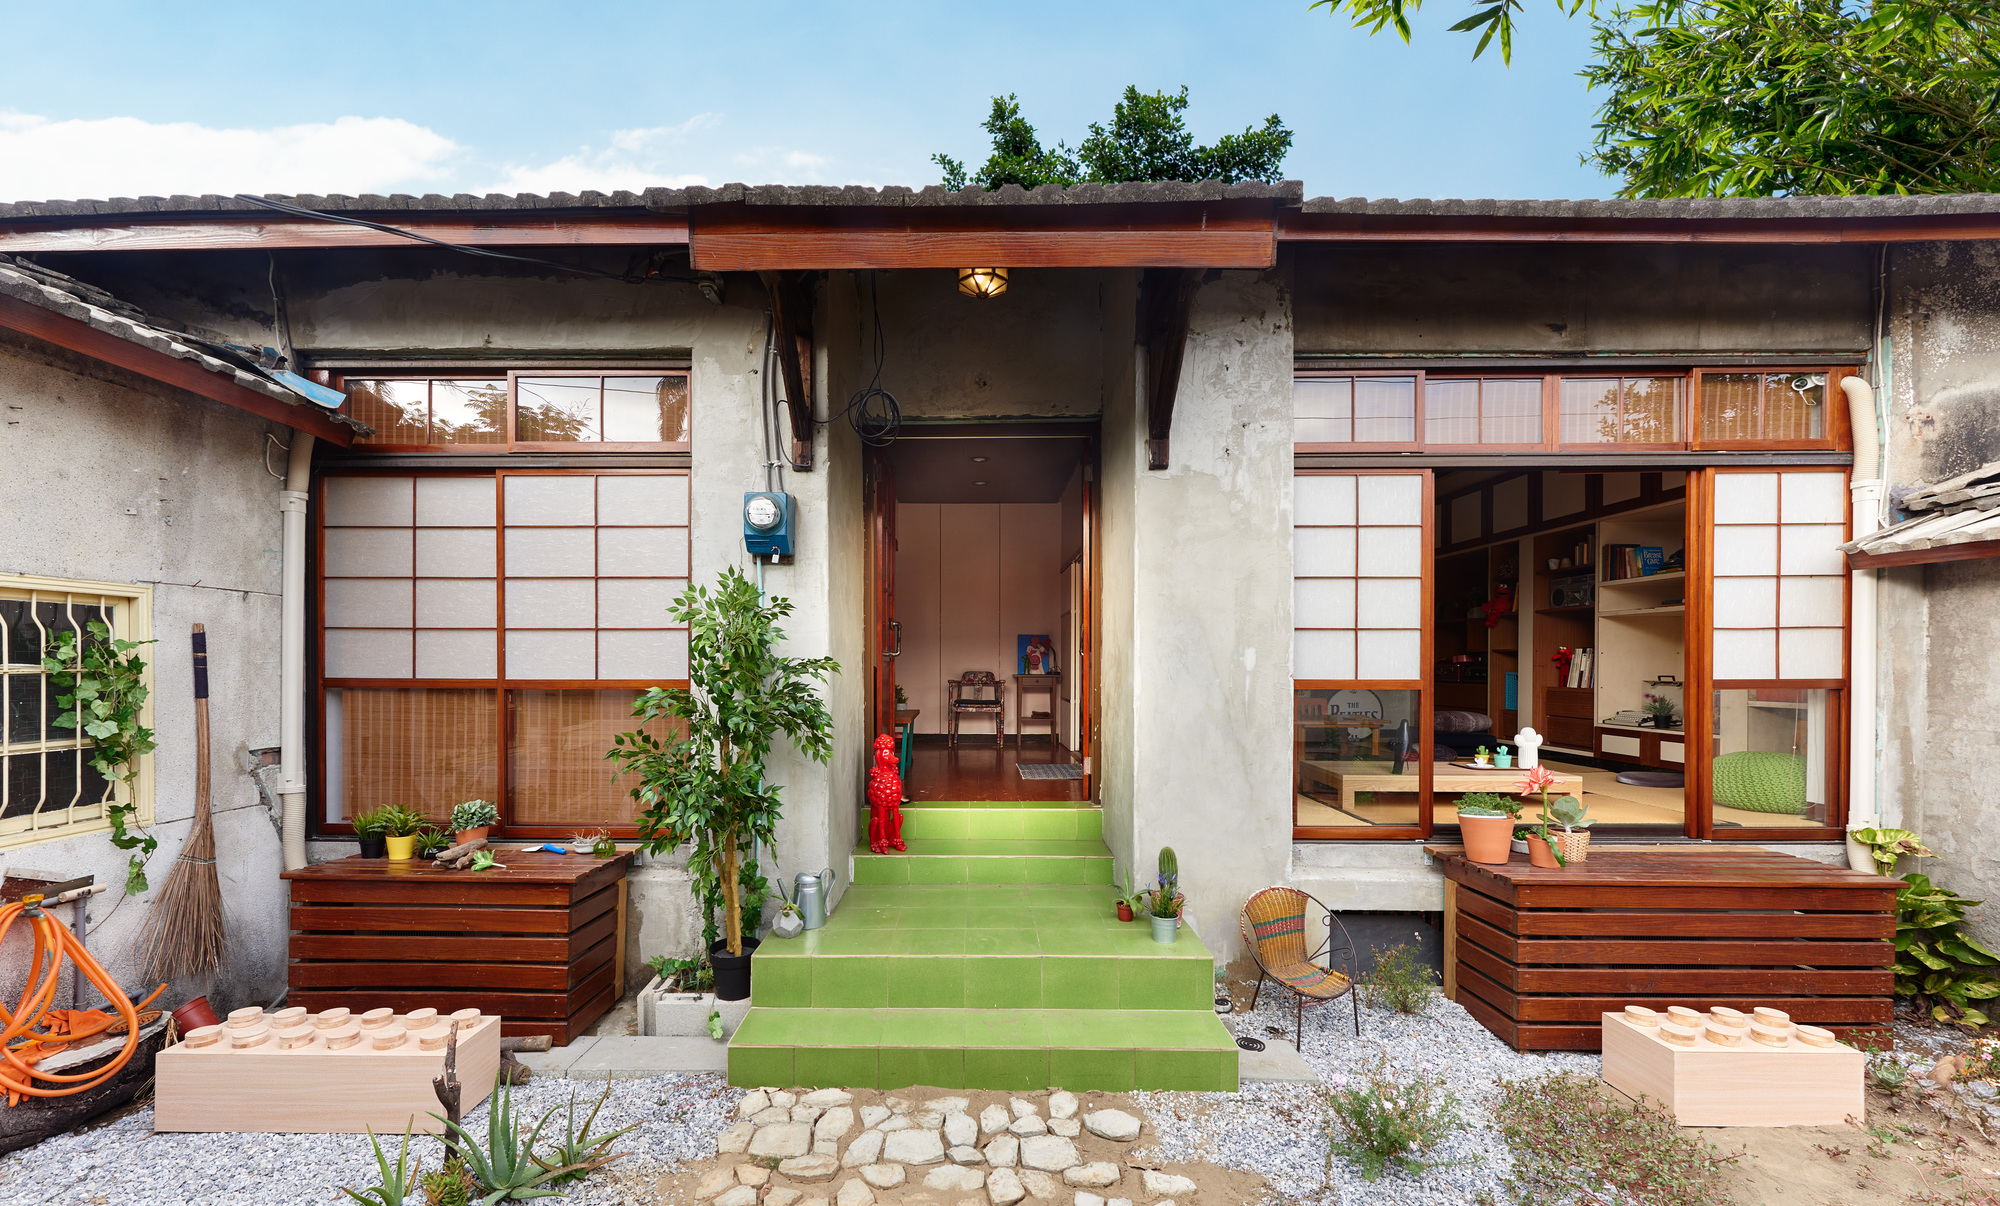 J y living experiment studio hao design archdaily for Korean house design pictures